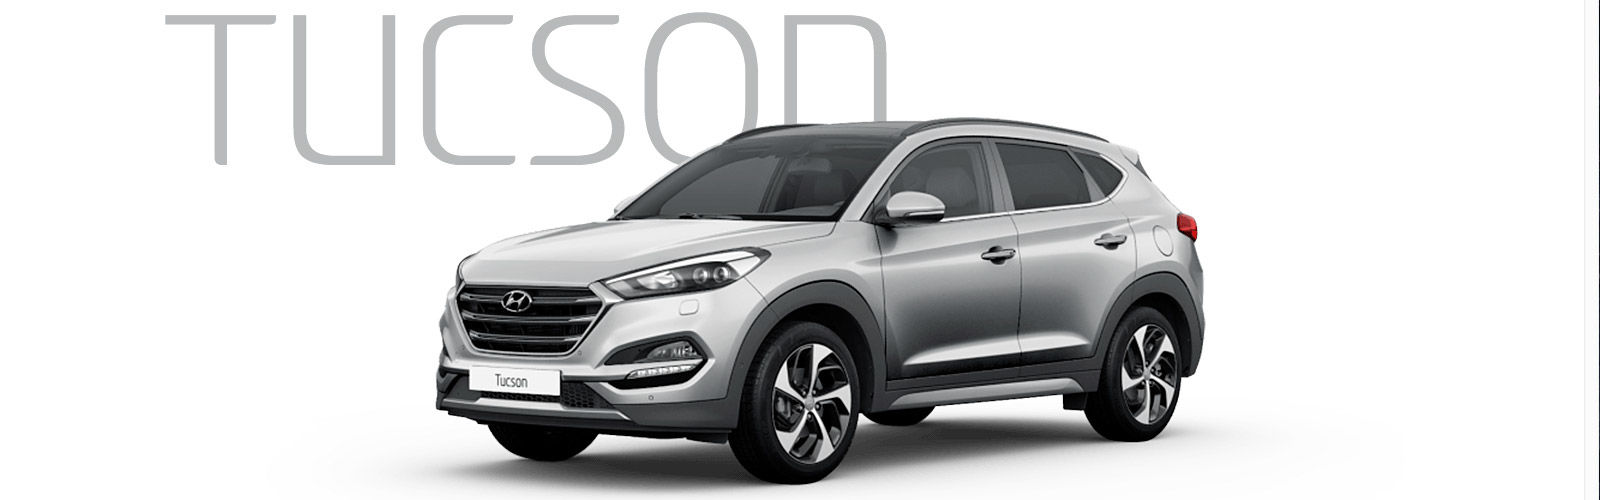 Hyundai Tucson Colours Guide And Prices Carwow